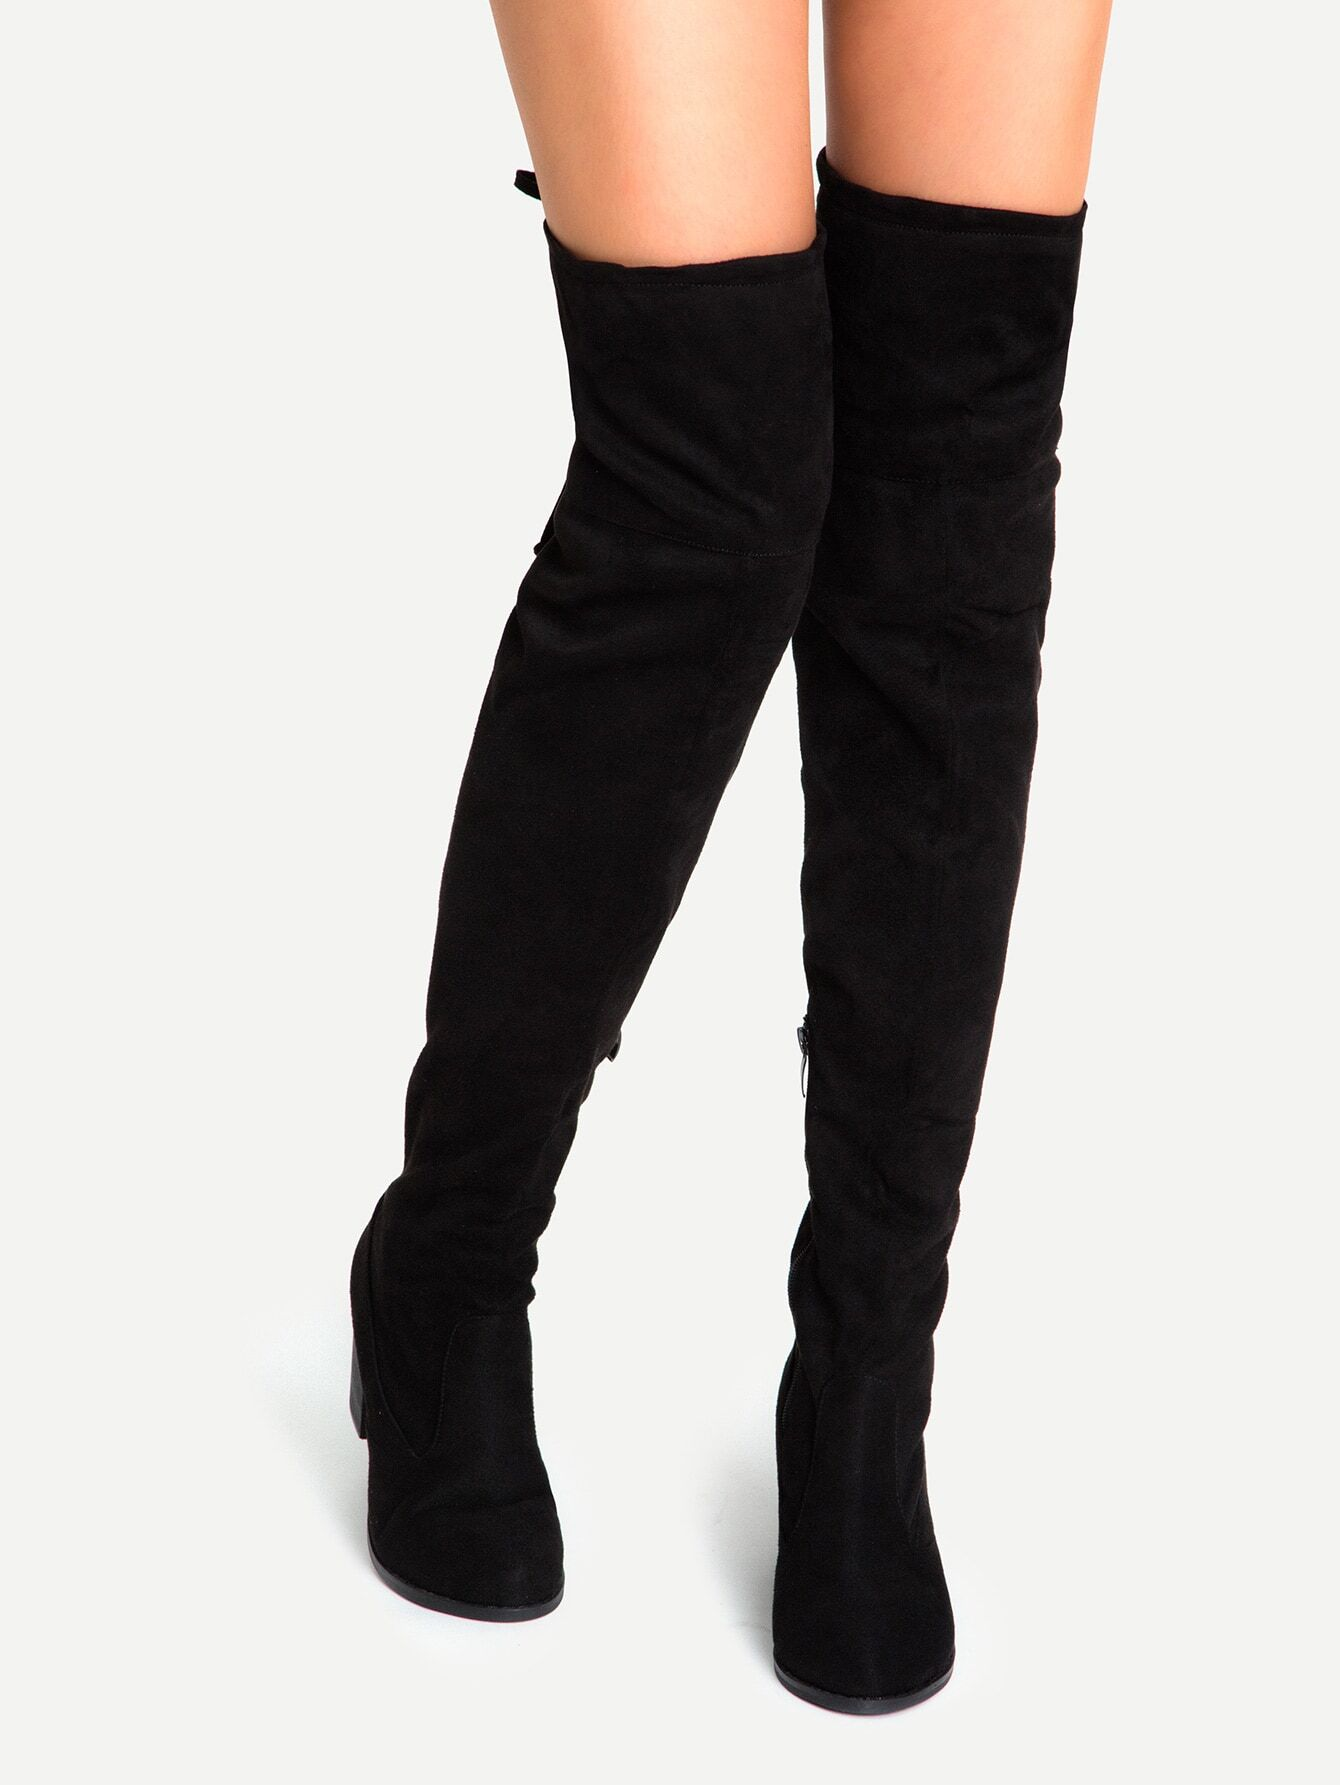 Black Suede Lace Up Over The Knee Boots shoes160816804